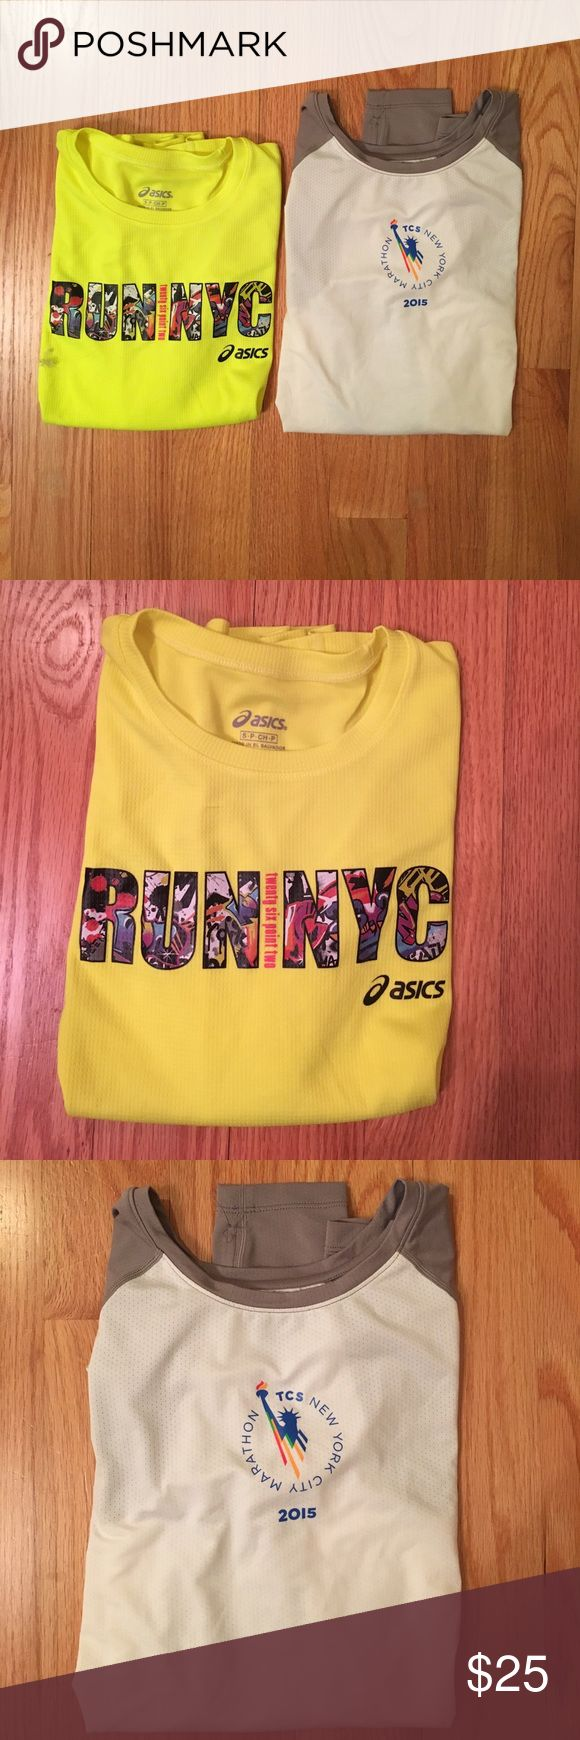 Two NYC Marathon Running Long Sleeves Wish I could say I ran these races but I just bought the shirts at the Asics store to look athletic. Selling both of these together. If you want to look sporty and city chic or if you actually run, these are a great buy! Asics Tops Tees - Long Sleeve